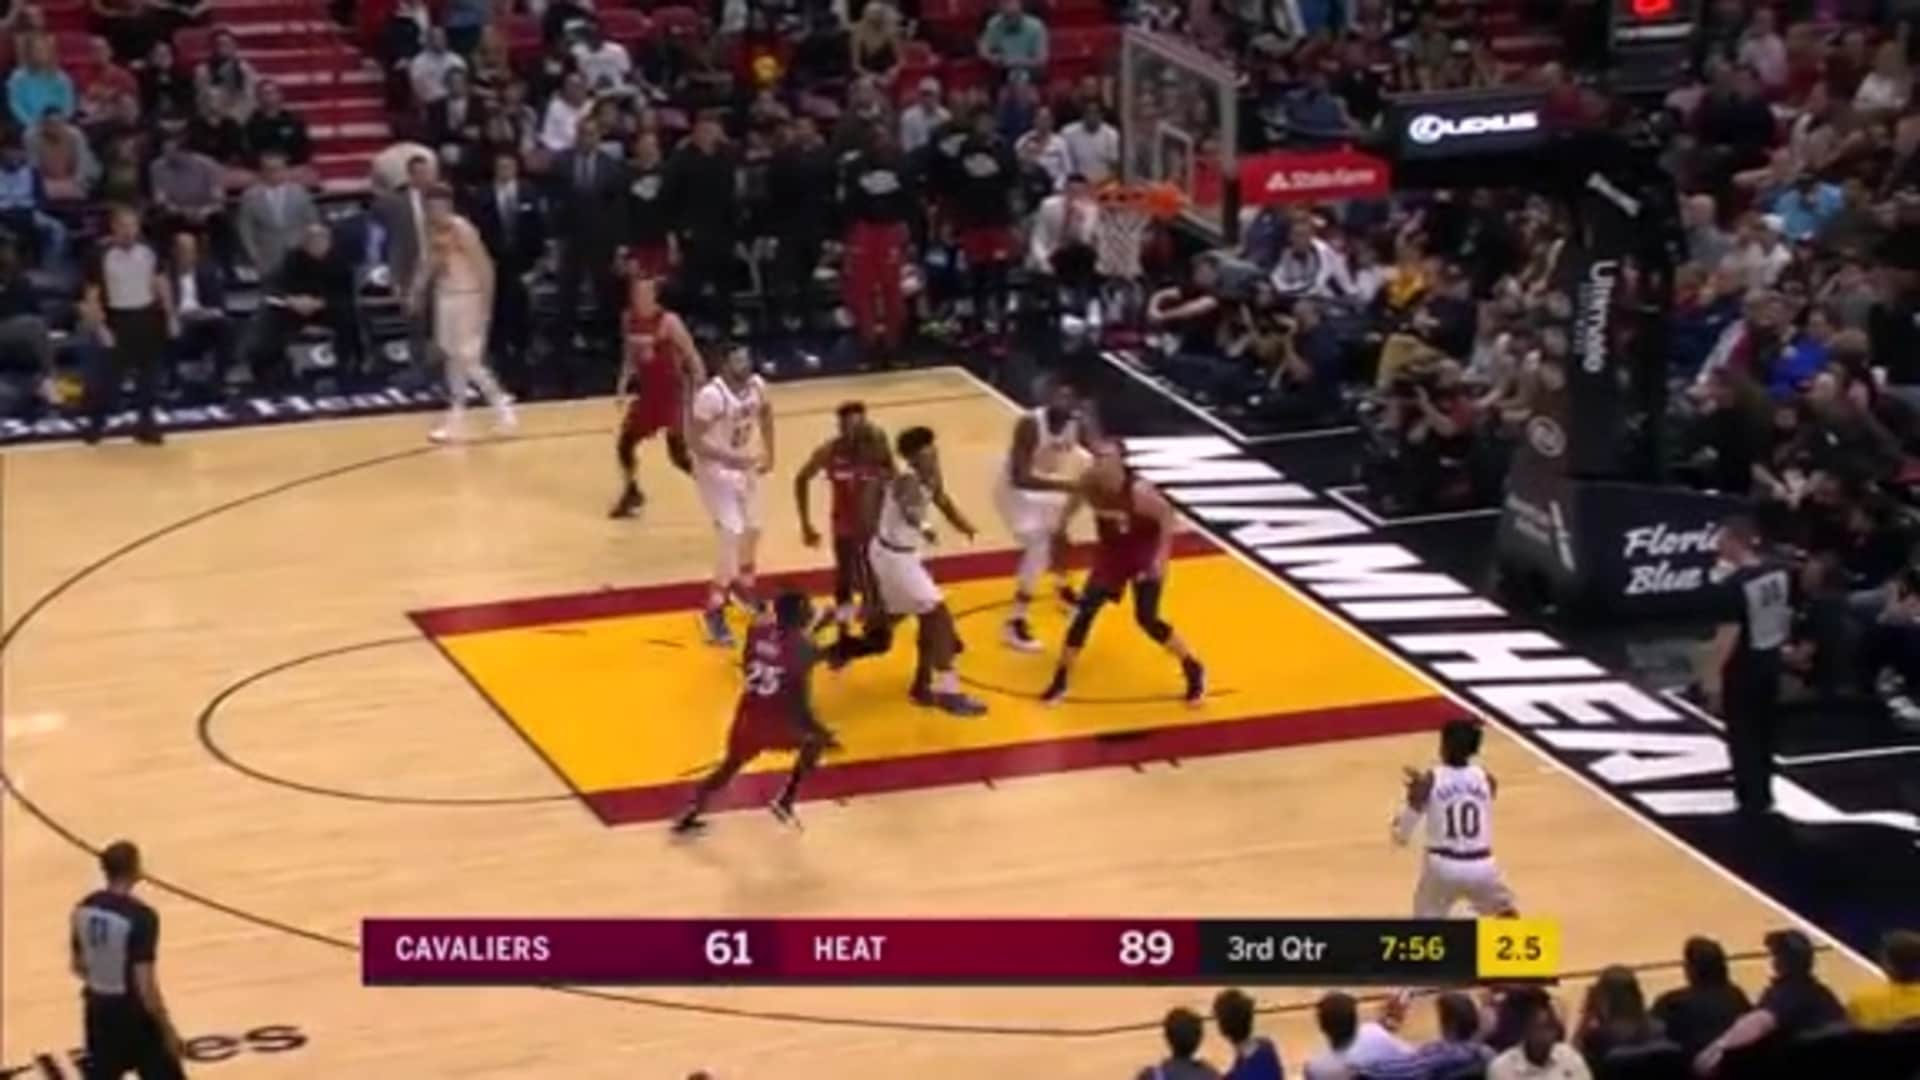 Garland Hits Triple as Shot Clock Expires